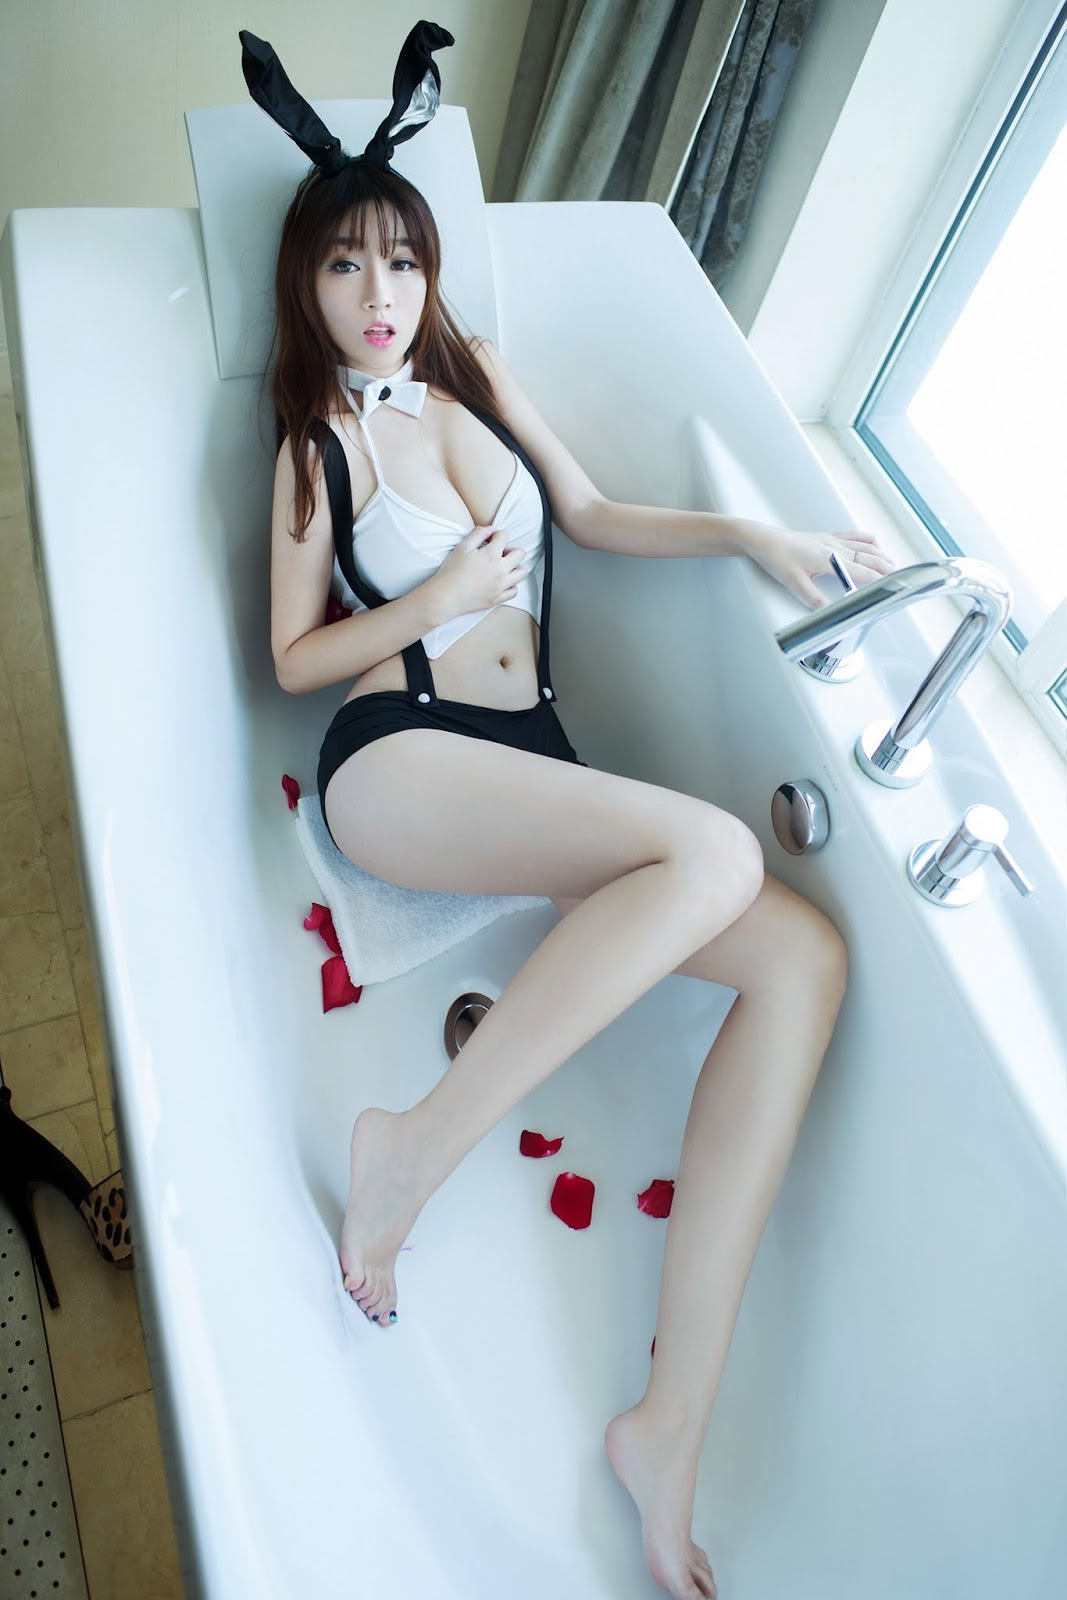 1%2B%252815%2529 - Hot Sexy TUIGIRL NO.43 Model Asian